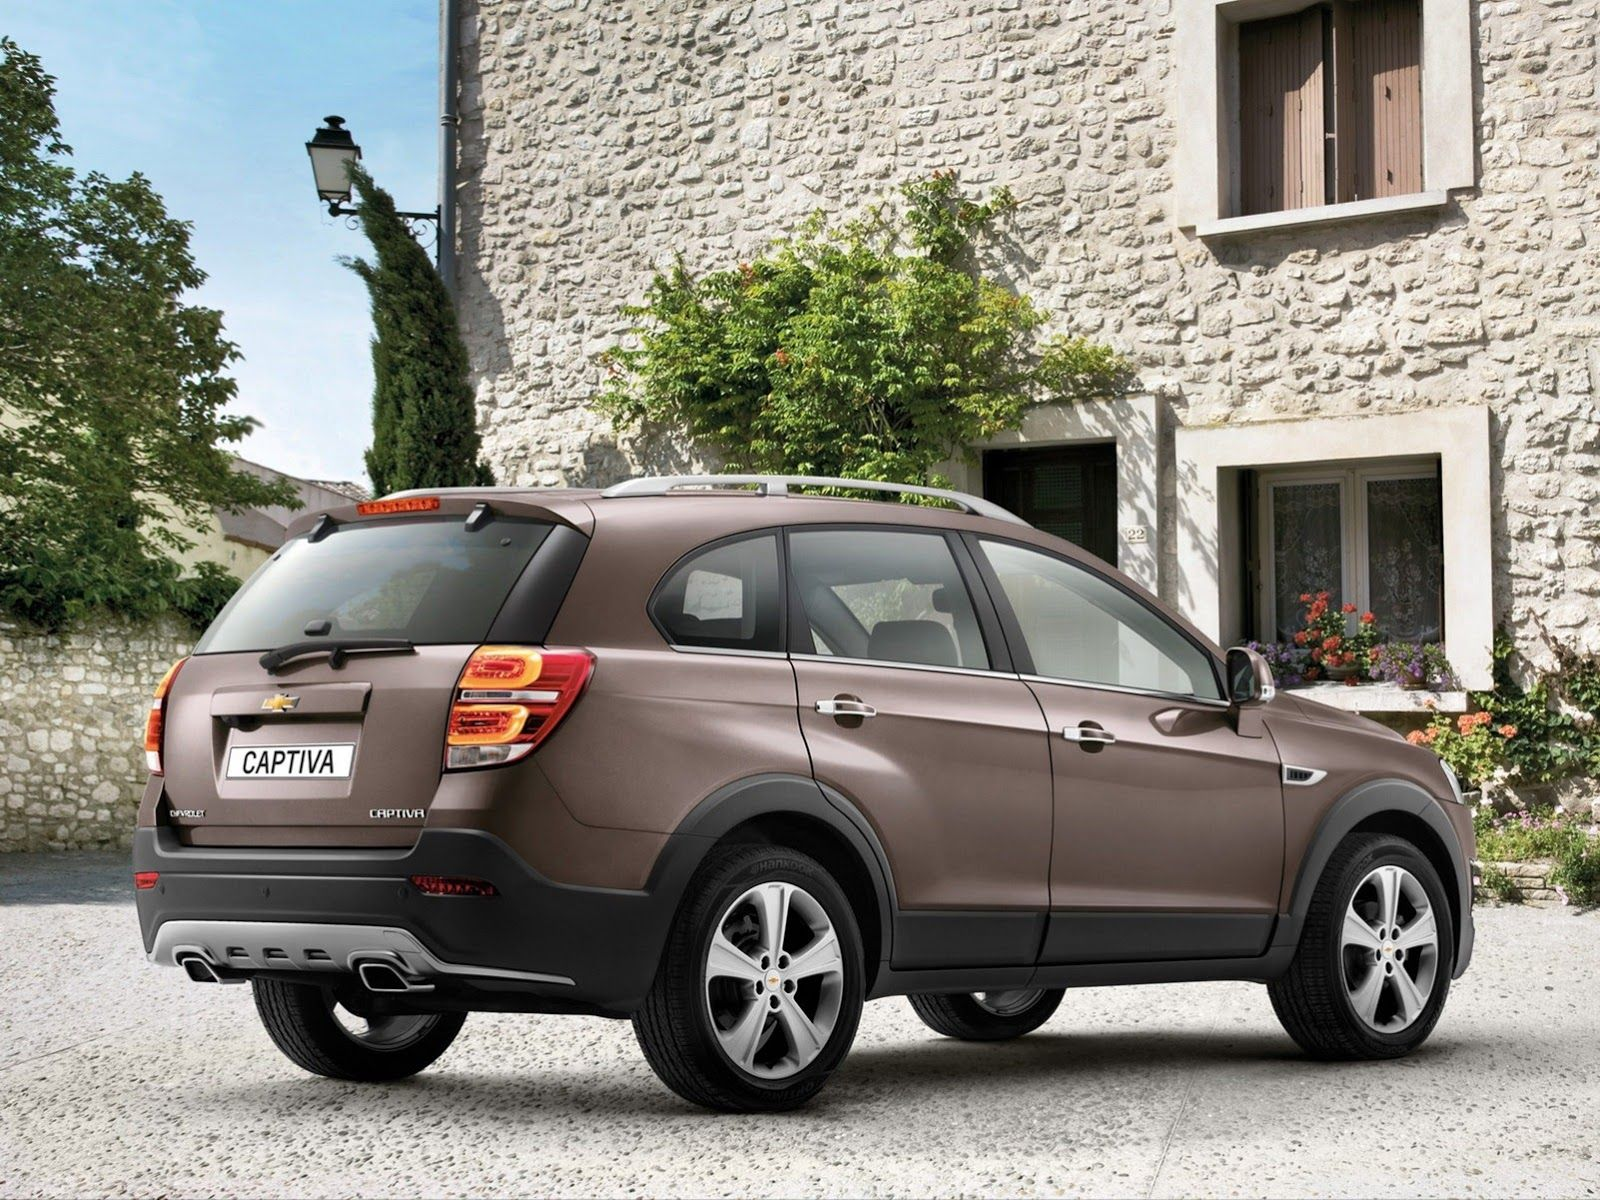 Chevrolet Captiva 2013 Car 3